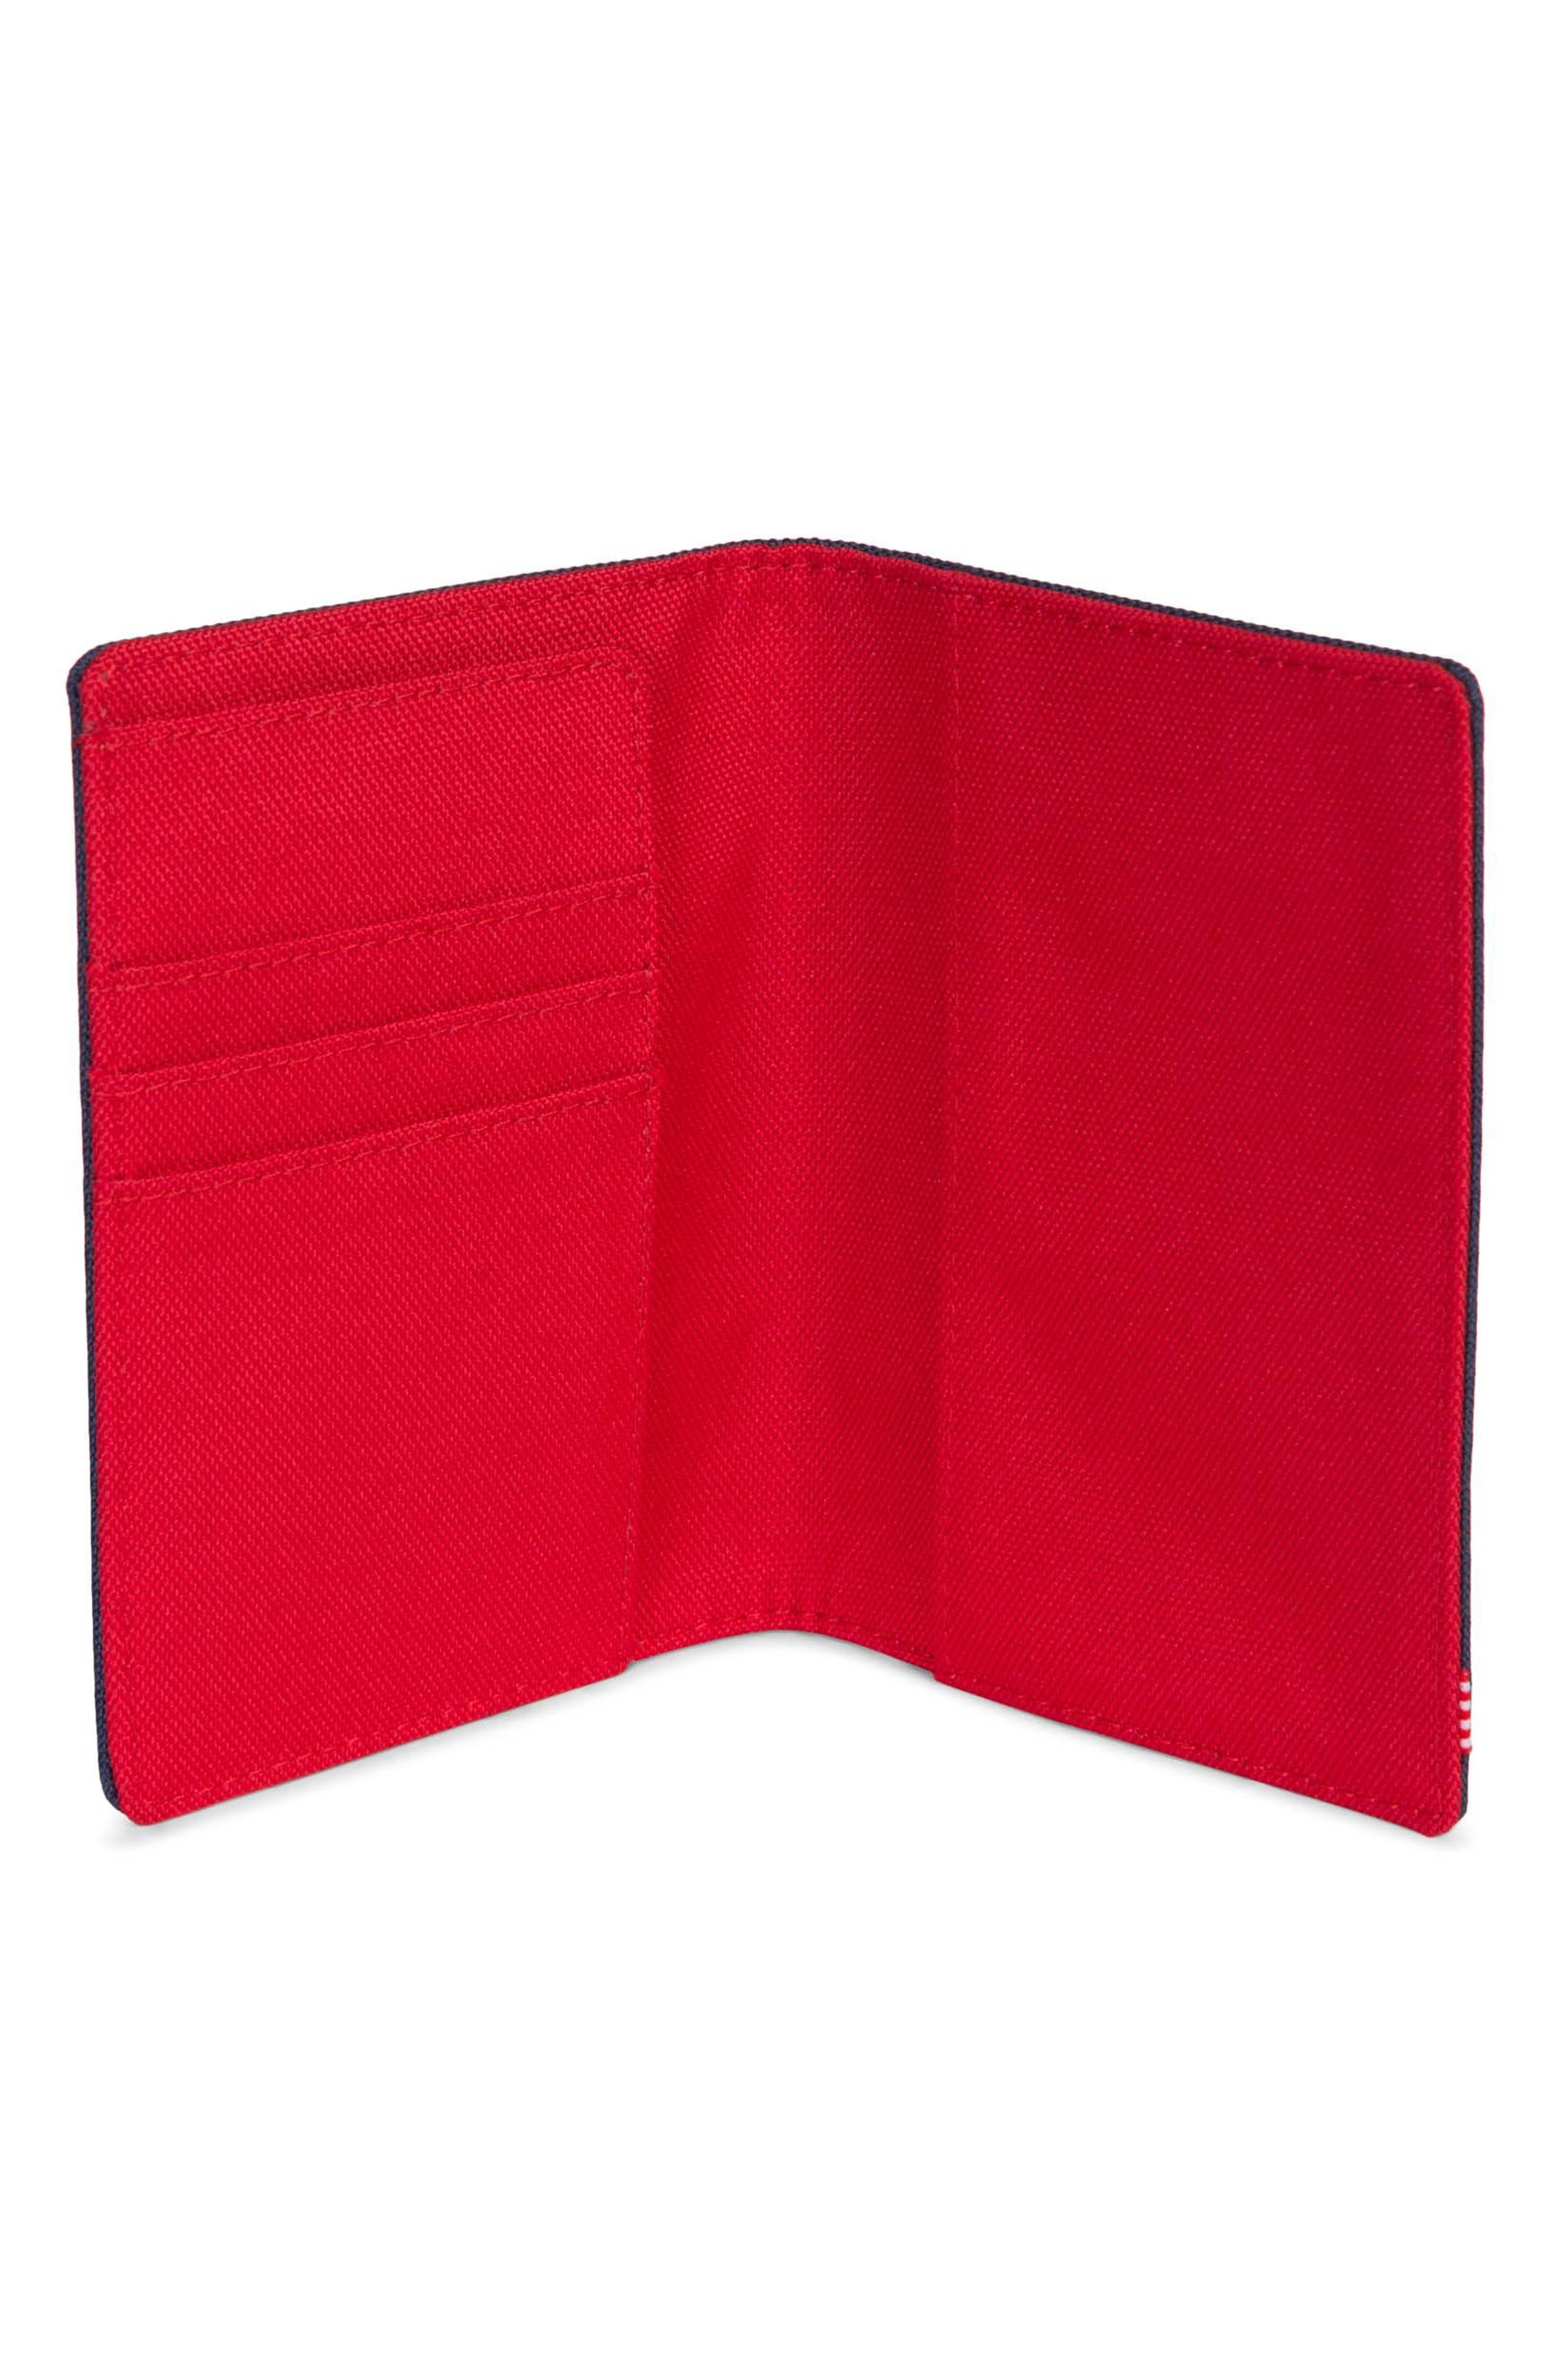 'Raynor' Passport Holder,                             Alternate thumbnail 2, color,                             Navy/ Red